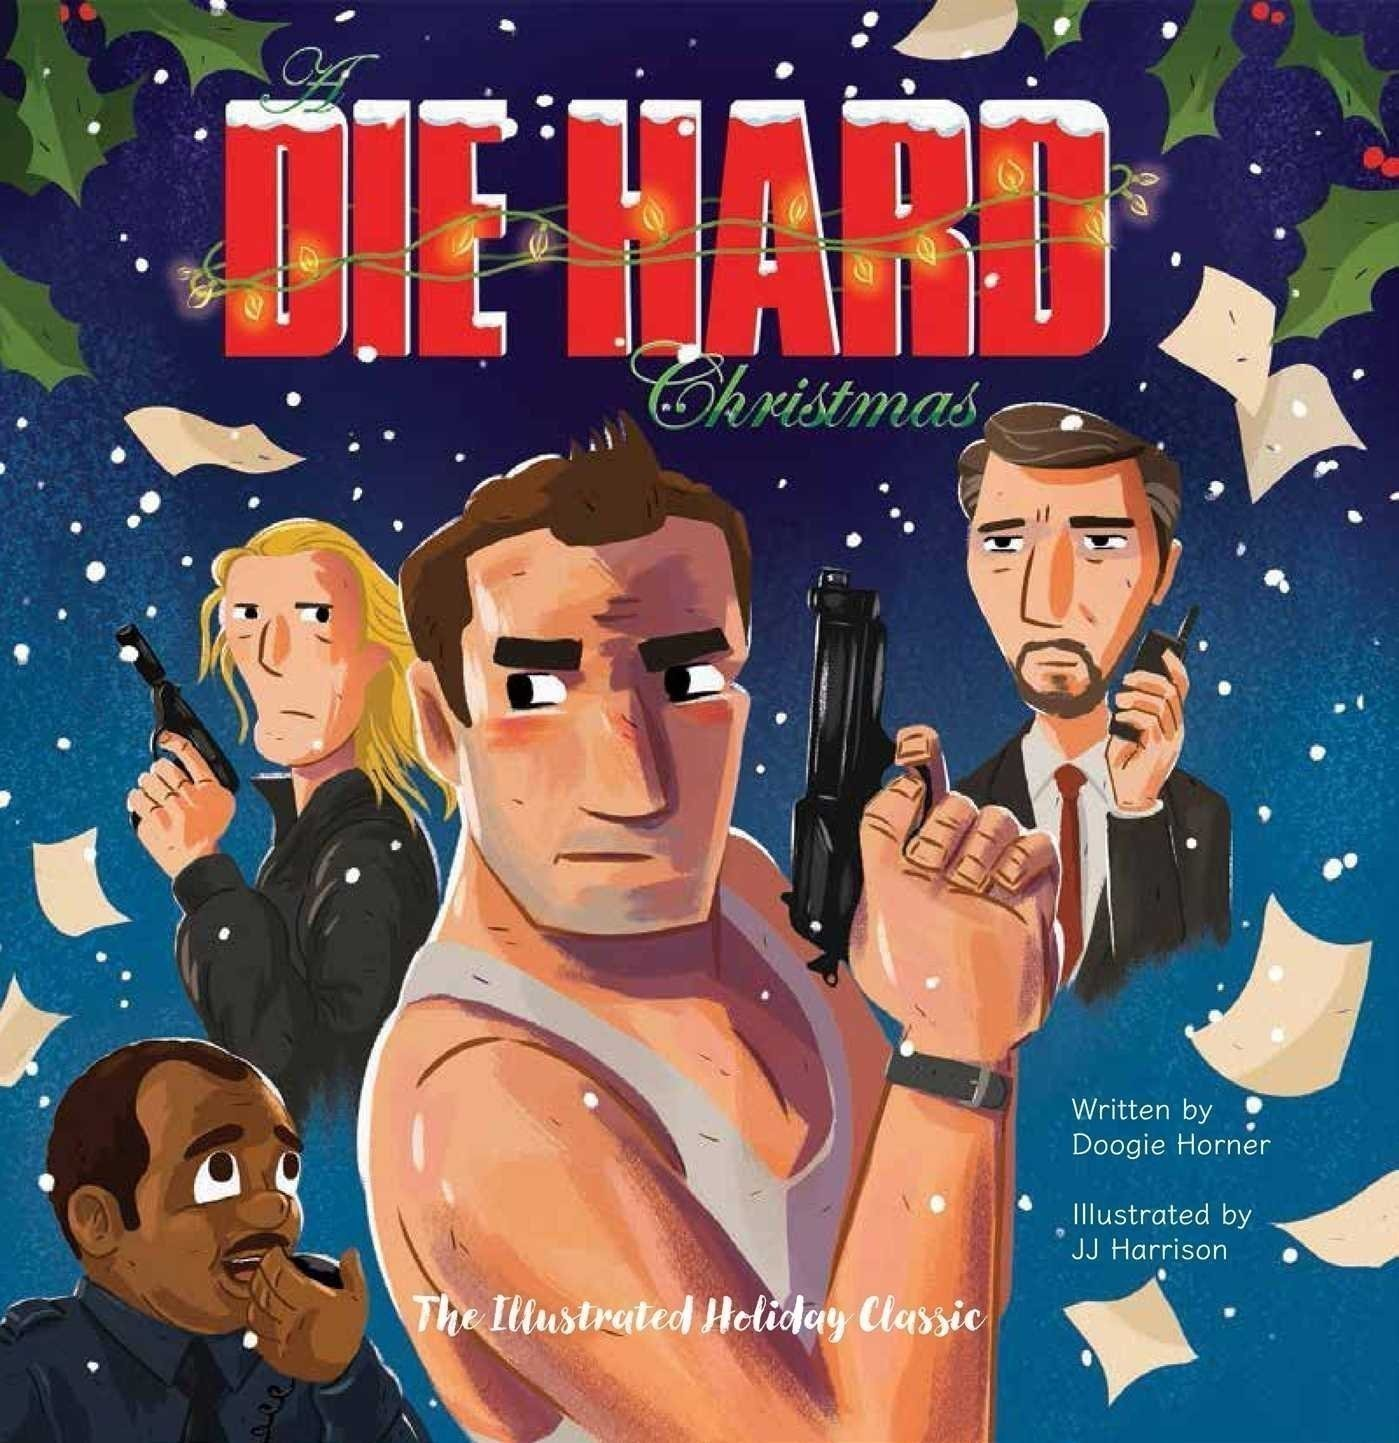 10. A Die Hard Christmas: The Illustrated Holiday Classic (Insight Editions)